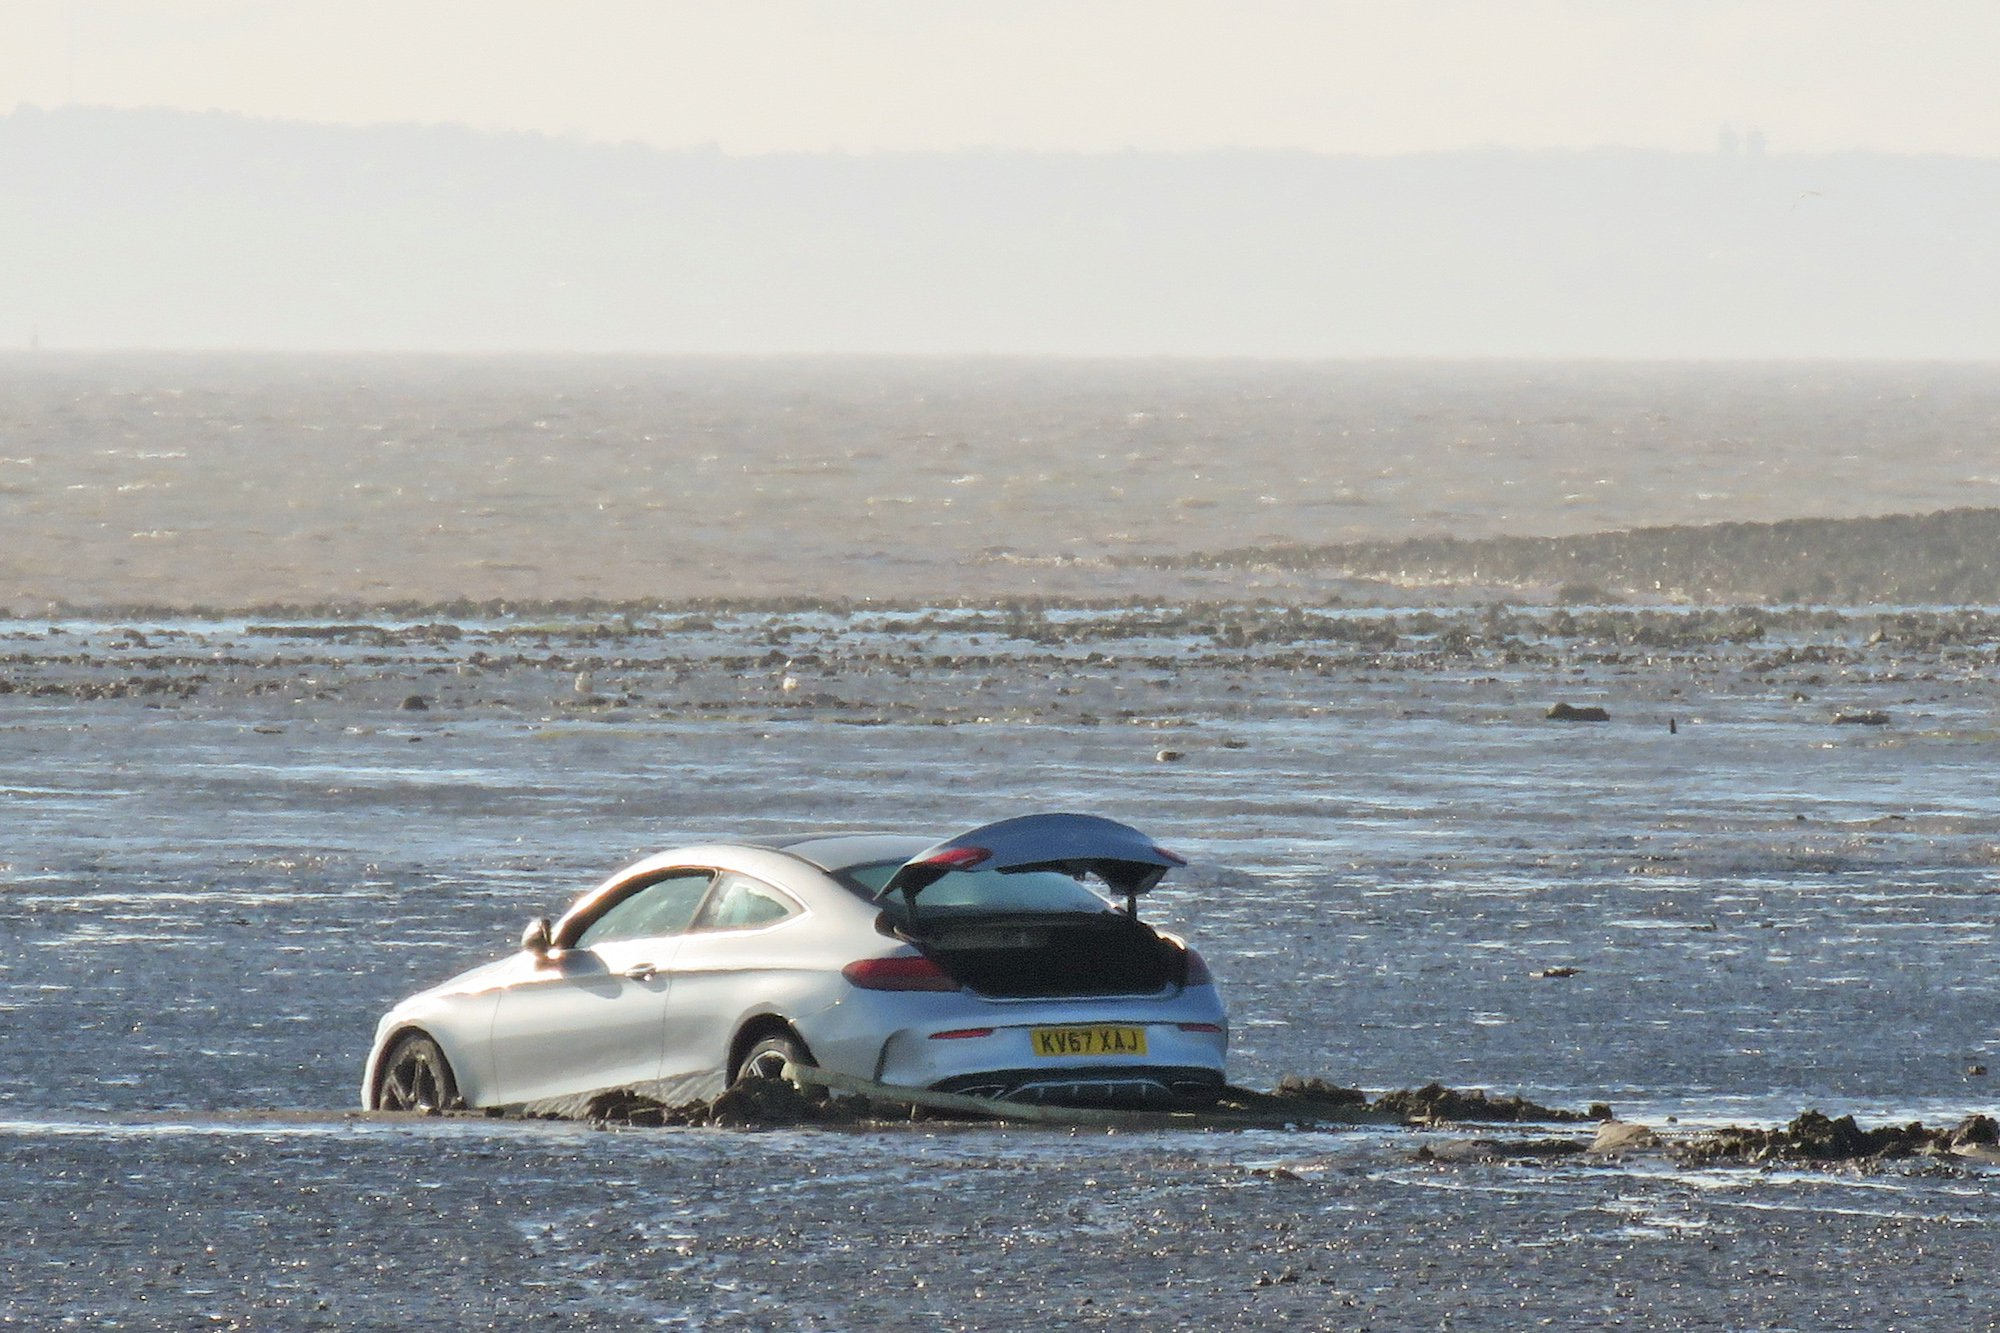 PIC: BURNHAM-ON-SEA.COM/APEX 23/04/2018 A top range motor that got stuck on a notorious beach had a tragic outcome. A man working for a commercial vehicle recovery service died on Brean beach, Somerset on Sunday after suffering a heart attack while attempting to retrieve a stranded Mercedes car from the mud. An air ambulance also flew in to help him and several Burnham-On-Sea Coastguards, paramedics, first aiders and a nurse attempted to revive the man by giving him CPR after he collapsed during the car recovery operation. It comes after a Mercedes hire car had initially become stuck on Brean beach on Saturday evening after being driven half a mile down the beach near Brean Down. Crews were unable to winch the car to safety on Saturday and therefore on Sunday a Bridgwater-based vehicle recovery company attempted to retrieve the vehicle on behalf of the hire car firm. One of the workers collapsed during the work. ** SEE STORY BY APEX NEWS - 01392 823144 ** ---------------------------------------------------- APEX NEWS AND PICTURES NEWS DESK: 01392 823144 PICTURE DESK: 01392 823145